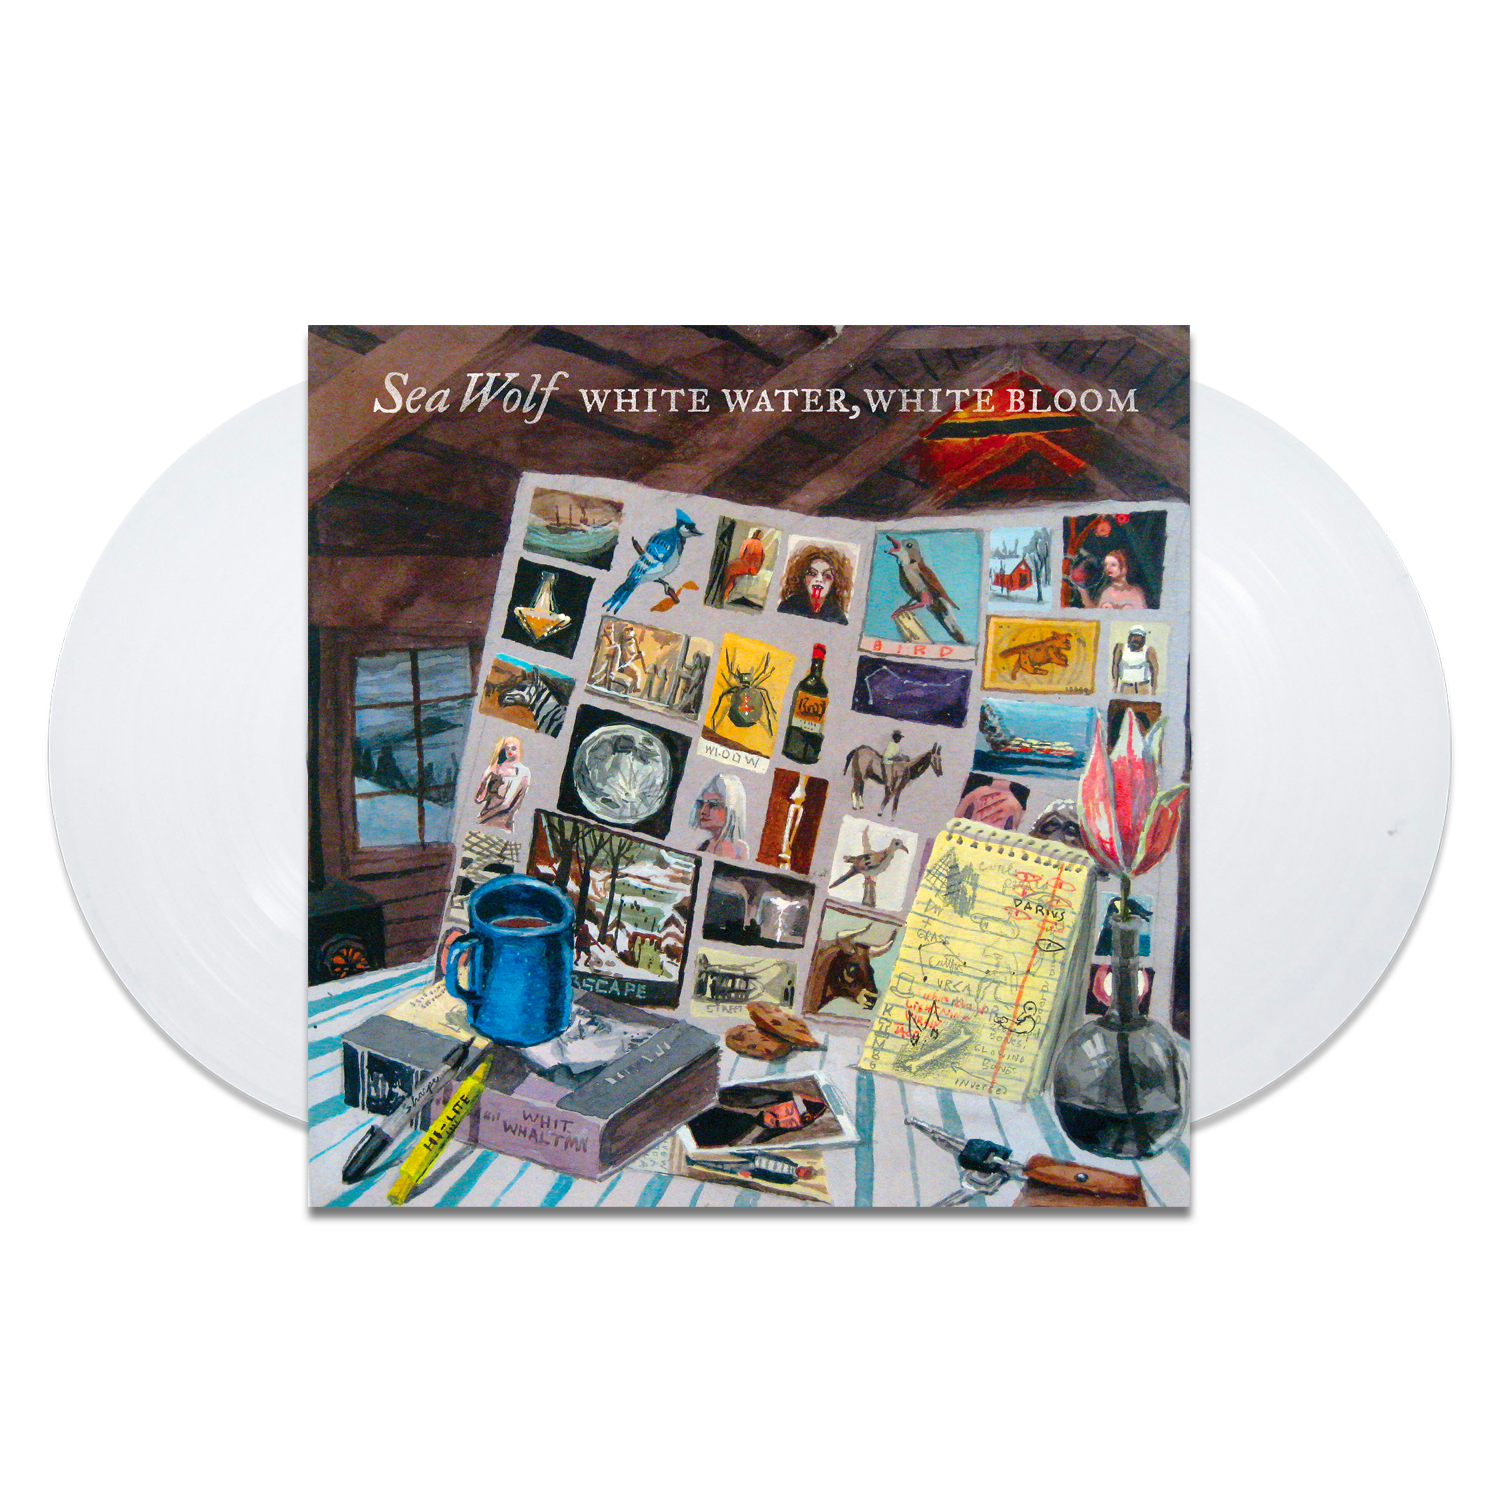 Image of White Water, White Bloom - white Vinyl - 10 Year Anniversary Edition